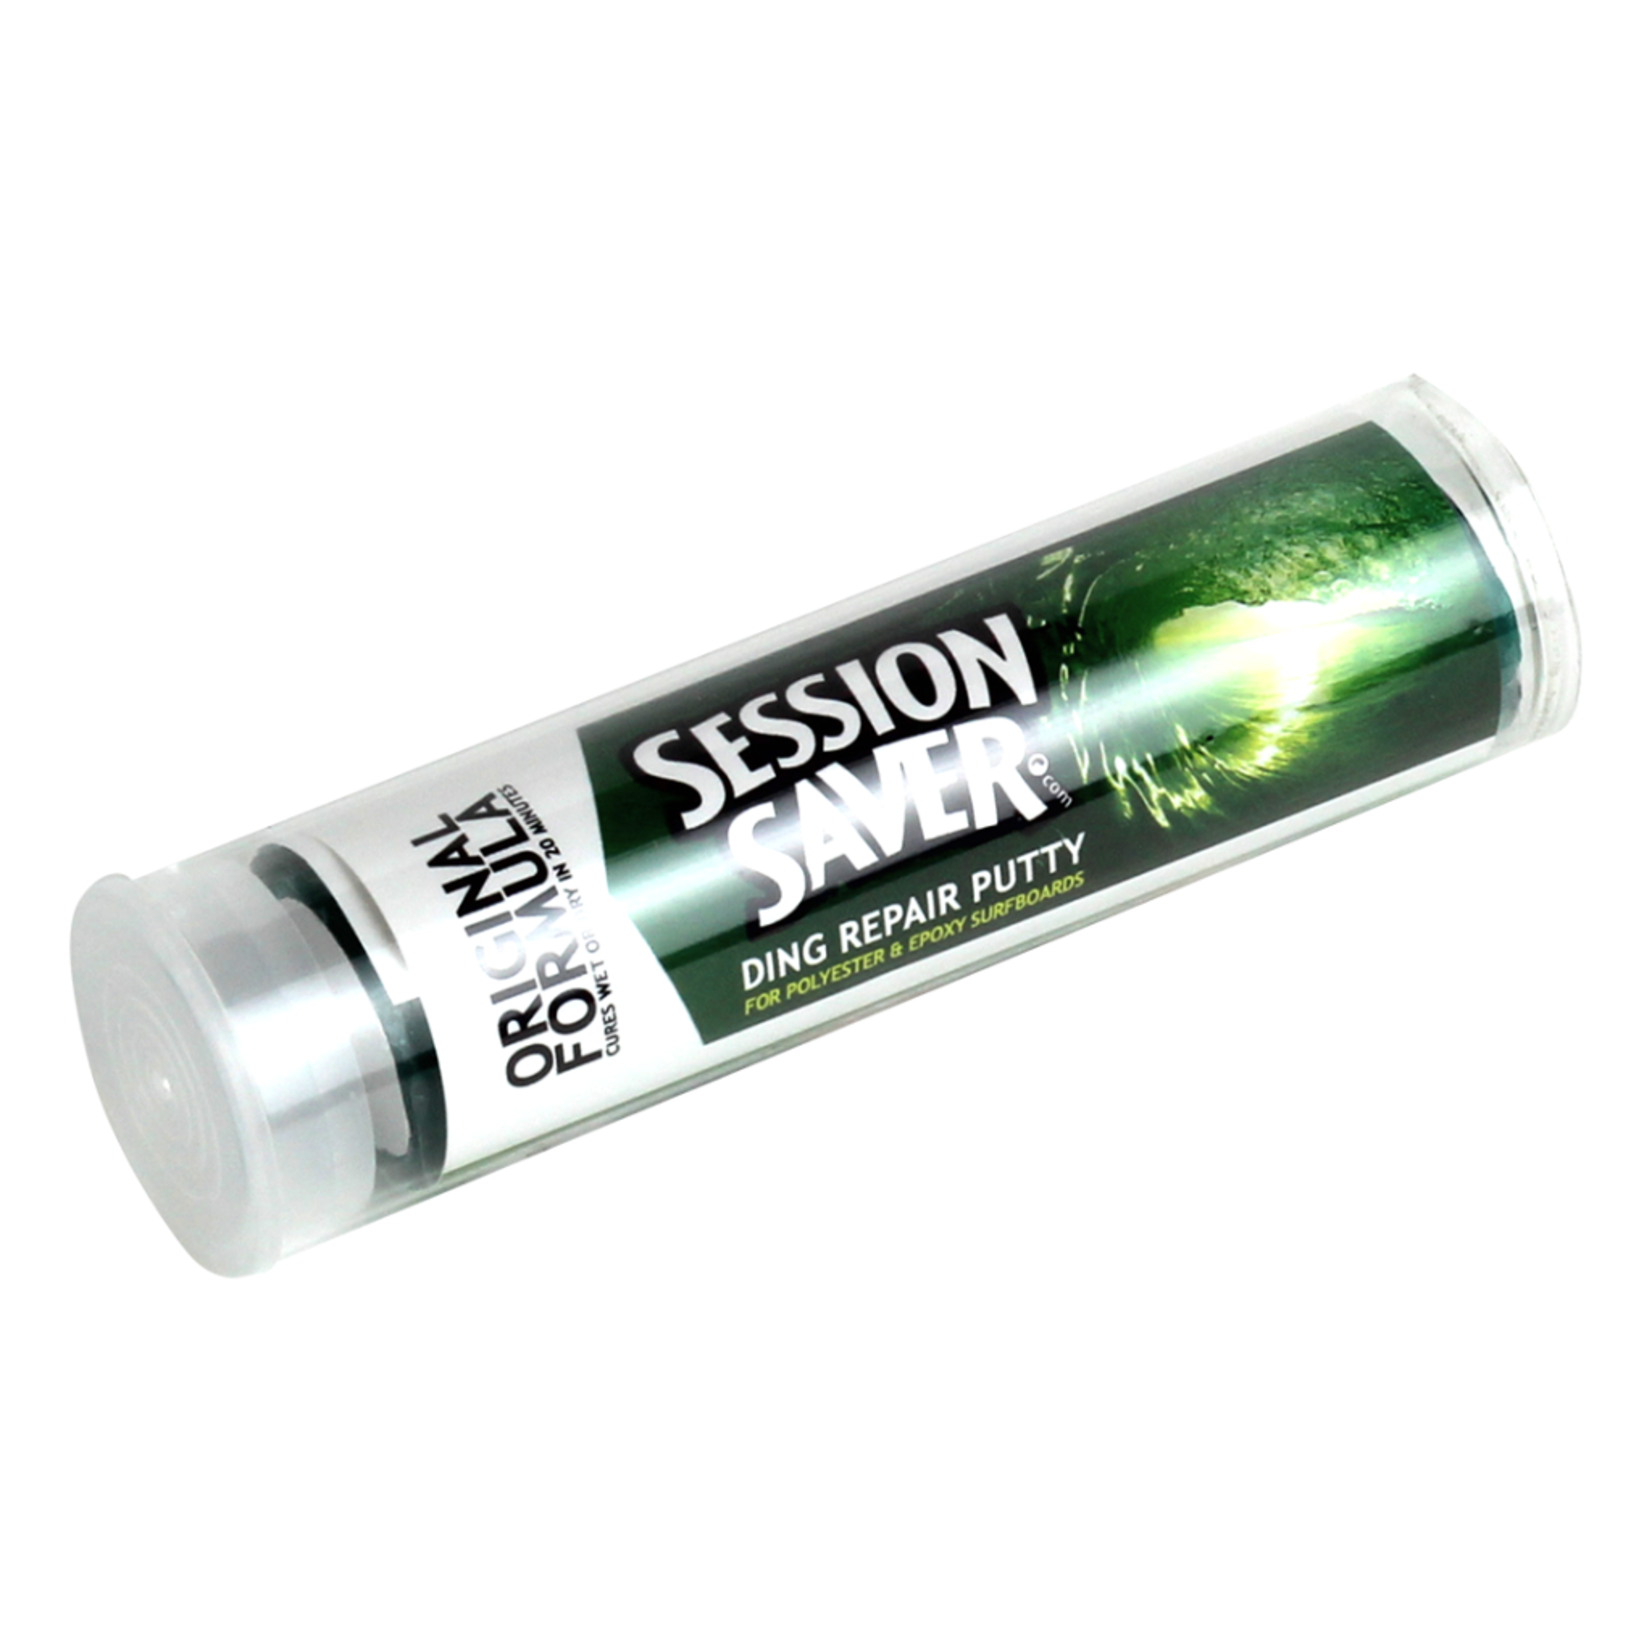 session saver Session Saver Ding Repair Putty